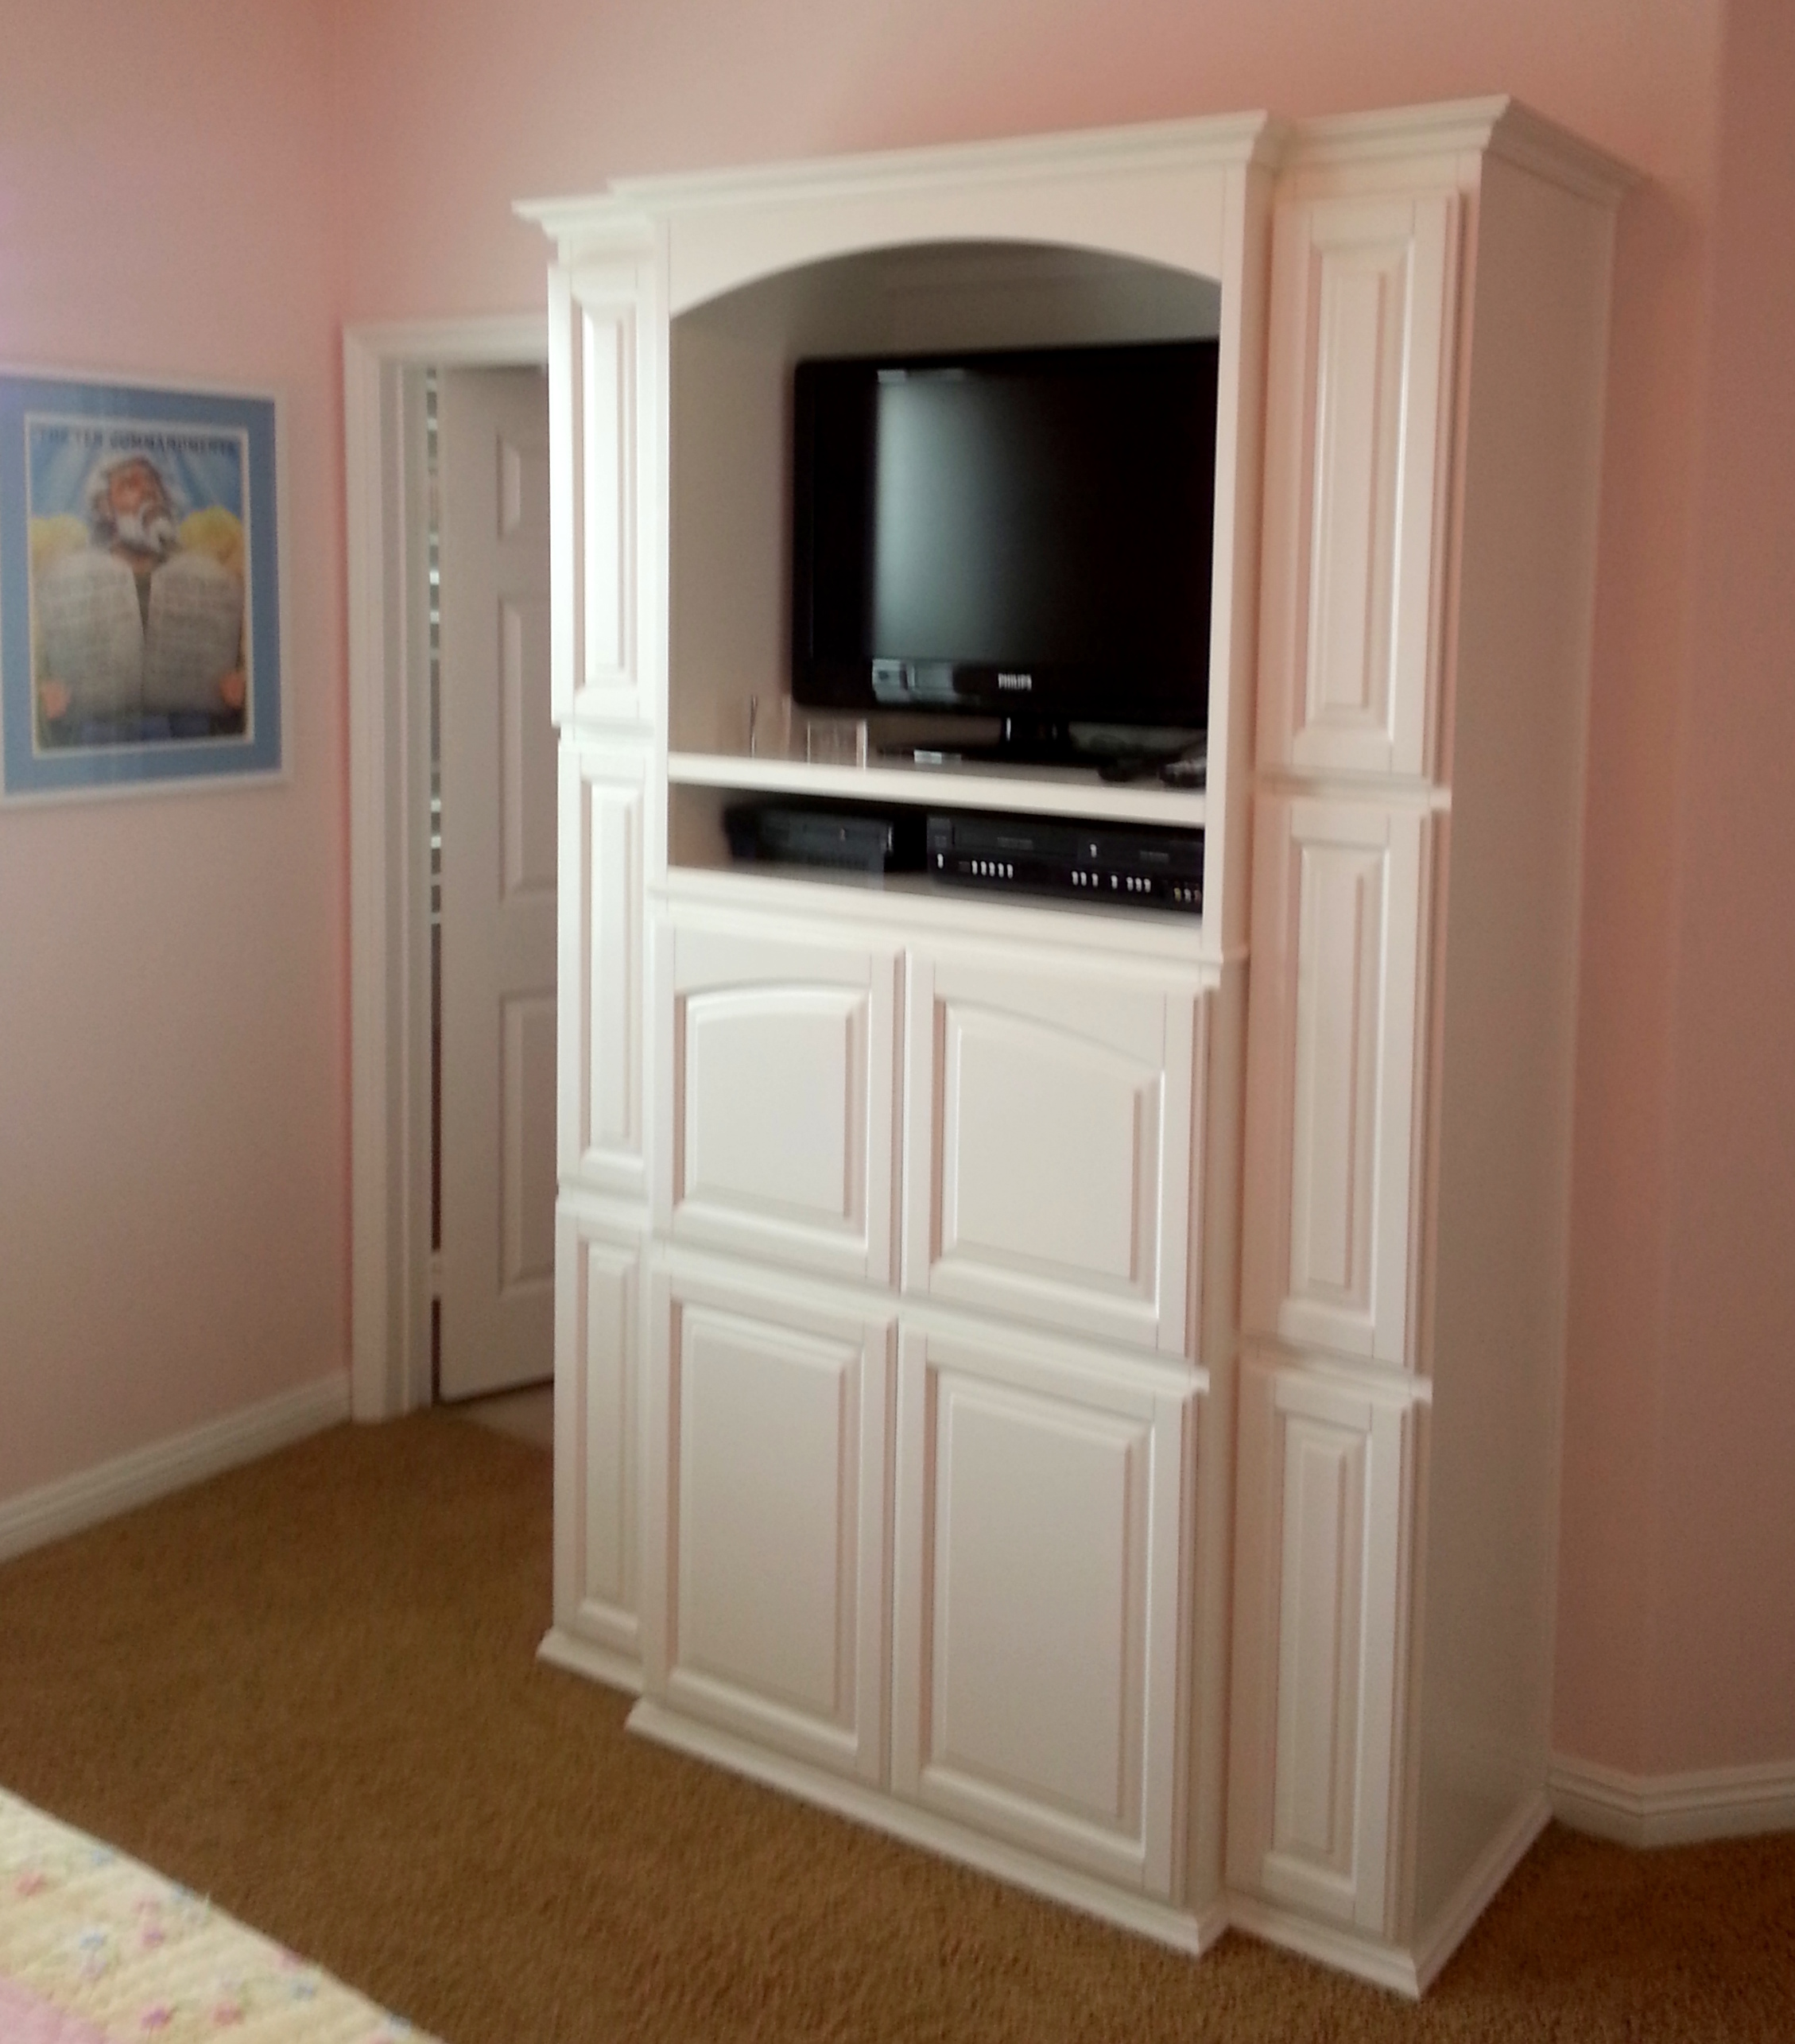 Built In Cabinets In Bedroom In Mission Viejo C L Design Specialists Inc